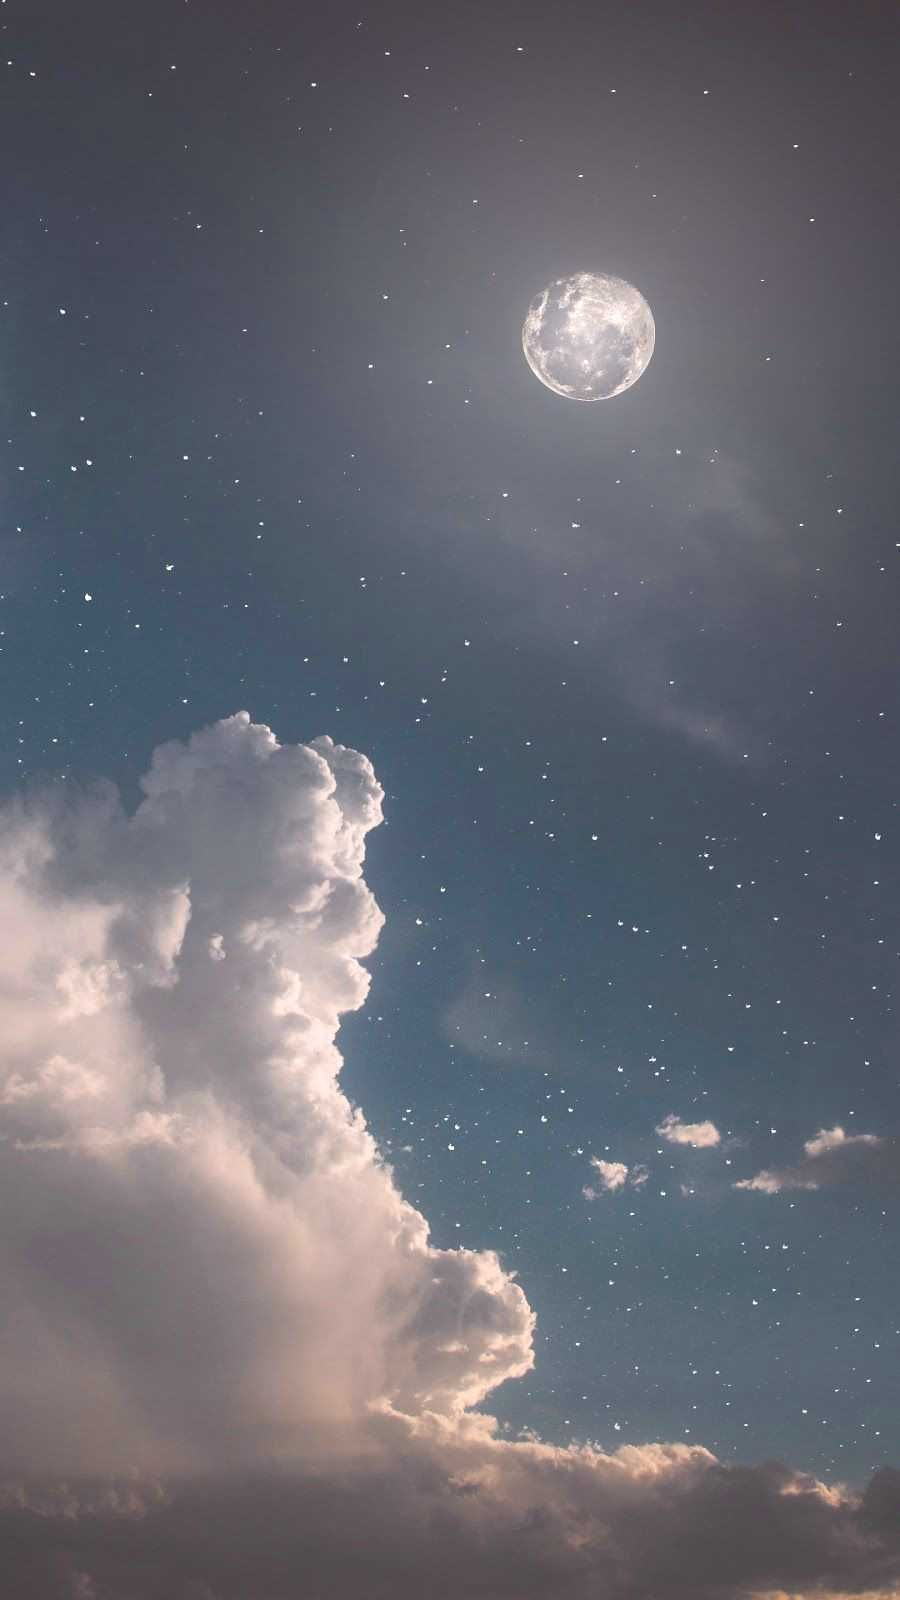 Aestheticwallpaper Background Aesthetic Wallpaper Moonlight Followme Android Iphone Night Star Sky Aesthetic Night Sky Wallpaper Aesthetic Wallpapers